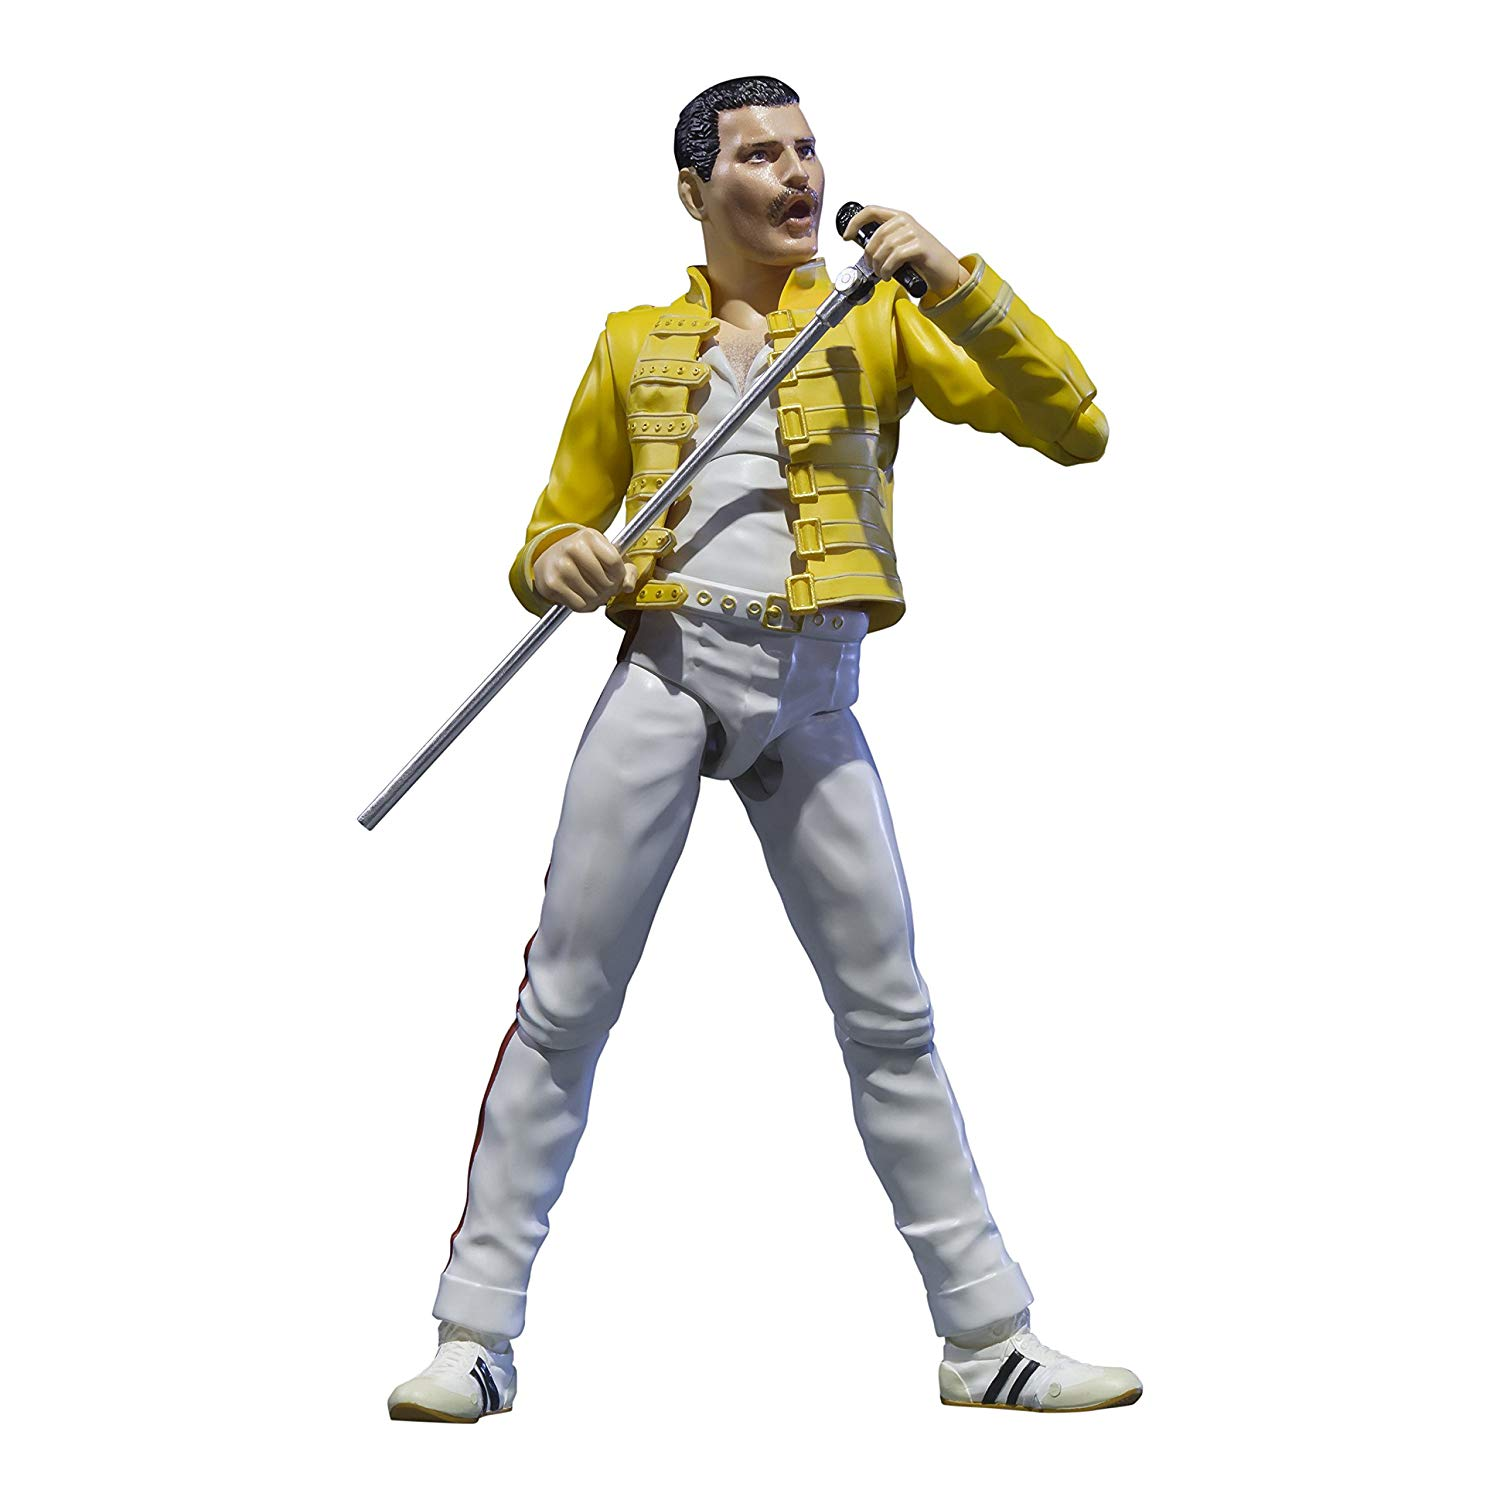 Фигурка BANDAI Tamashii Nations S.H.Figuarts Freddy Mercury 58127-3